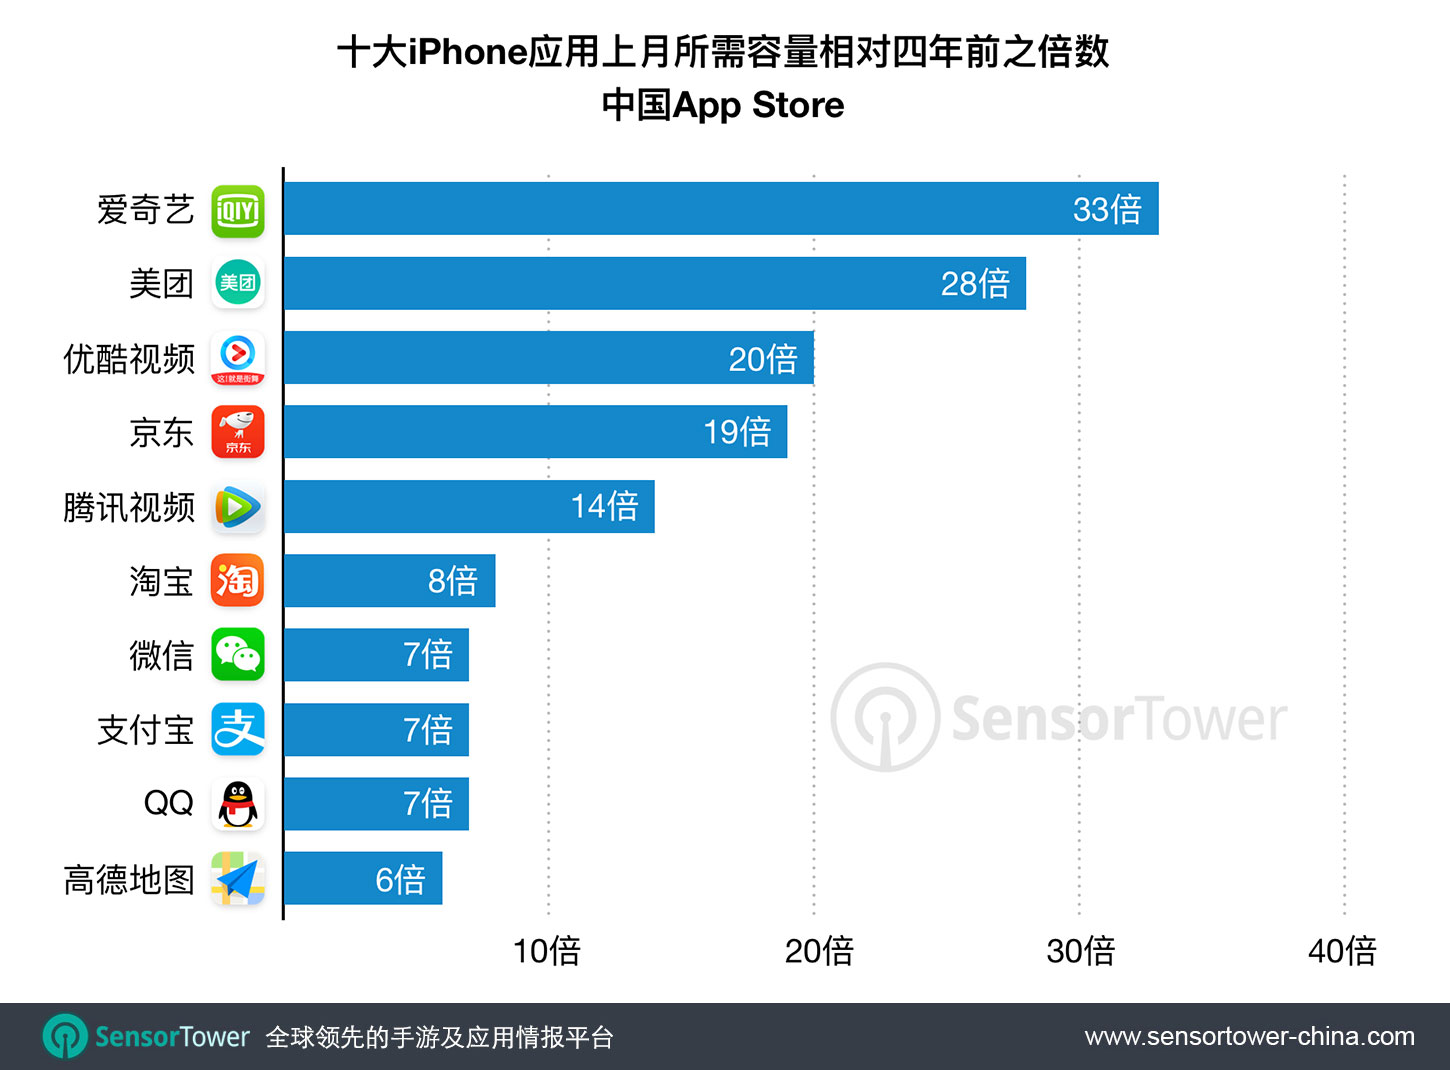 Chinese Top iPhone Apps Size by Growth  - chinese top iphone apps size by growth - 仅仅四年,中国下载量最大的iPhone应用所需容量扩大近10倍